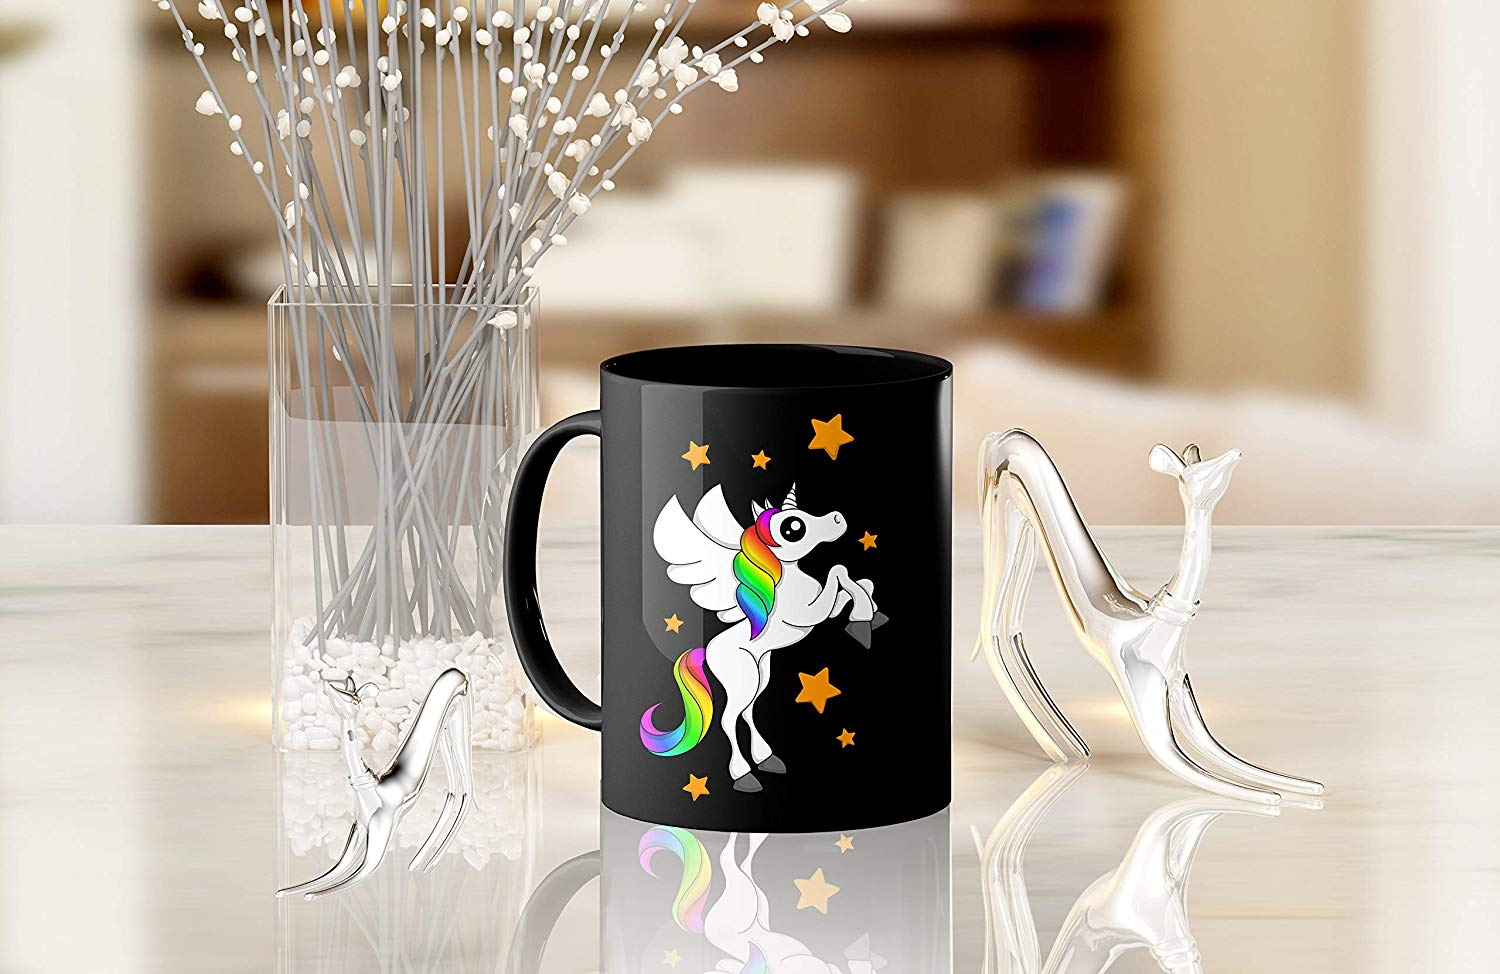 Heat Sensitive Color Changing Coffee Mug Funny Coffee Cup Black Unicorn Design Funny Gift Idea B07D21DSFL 9